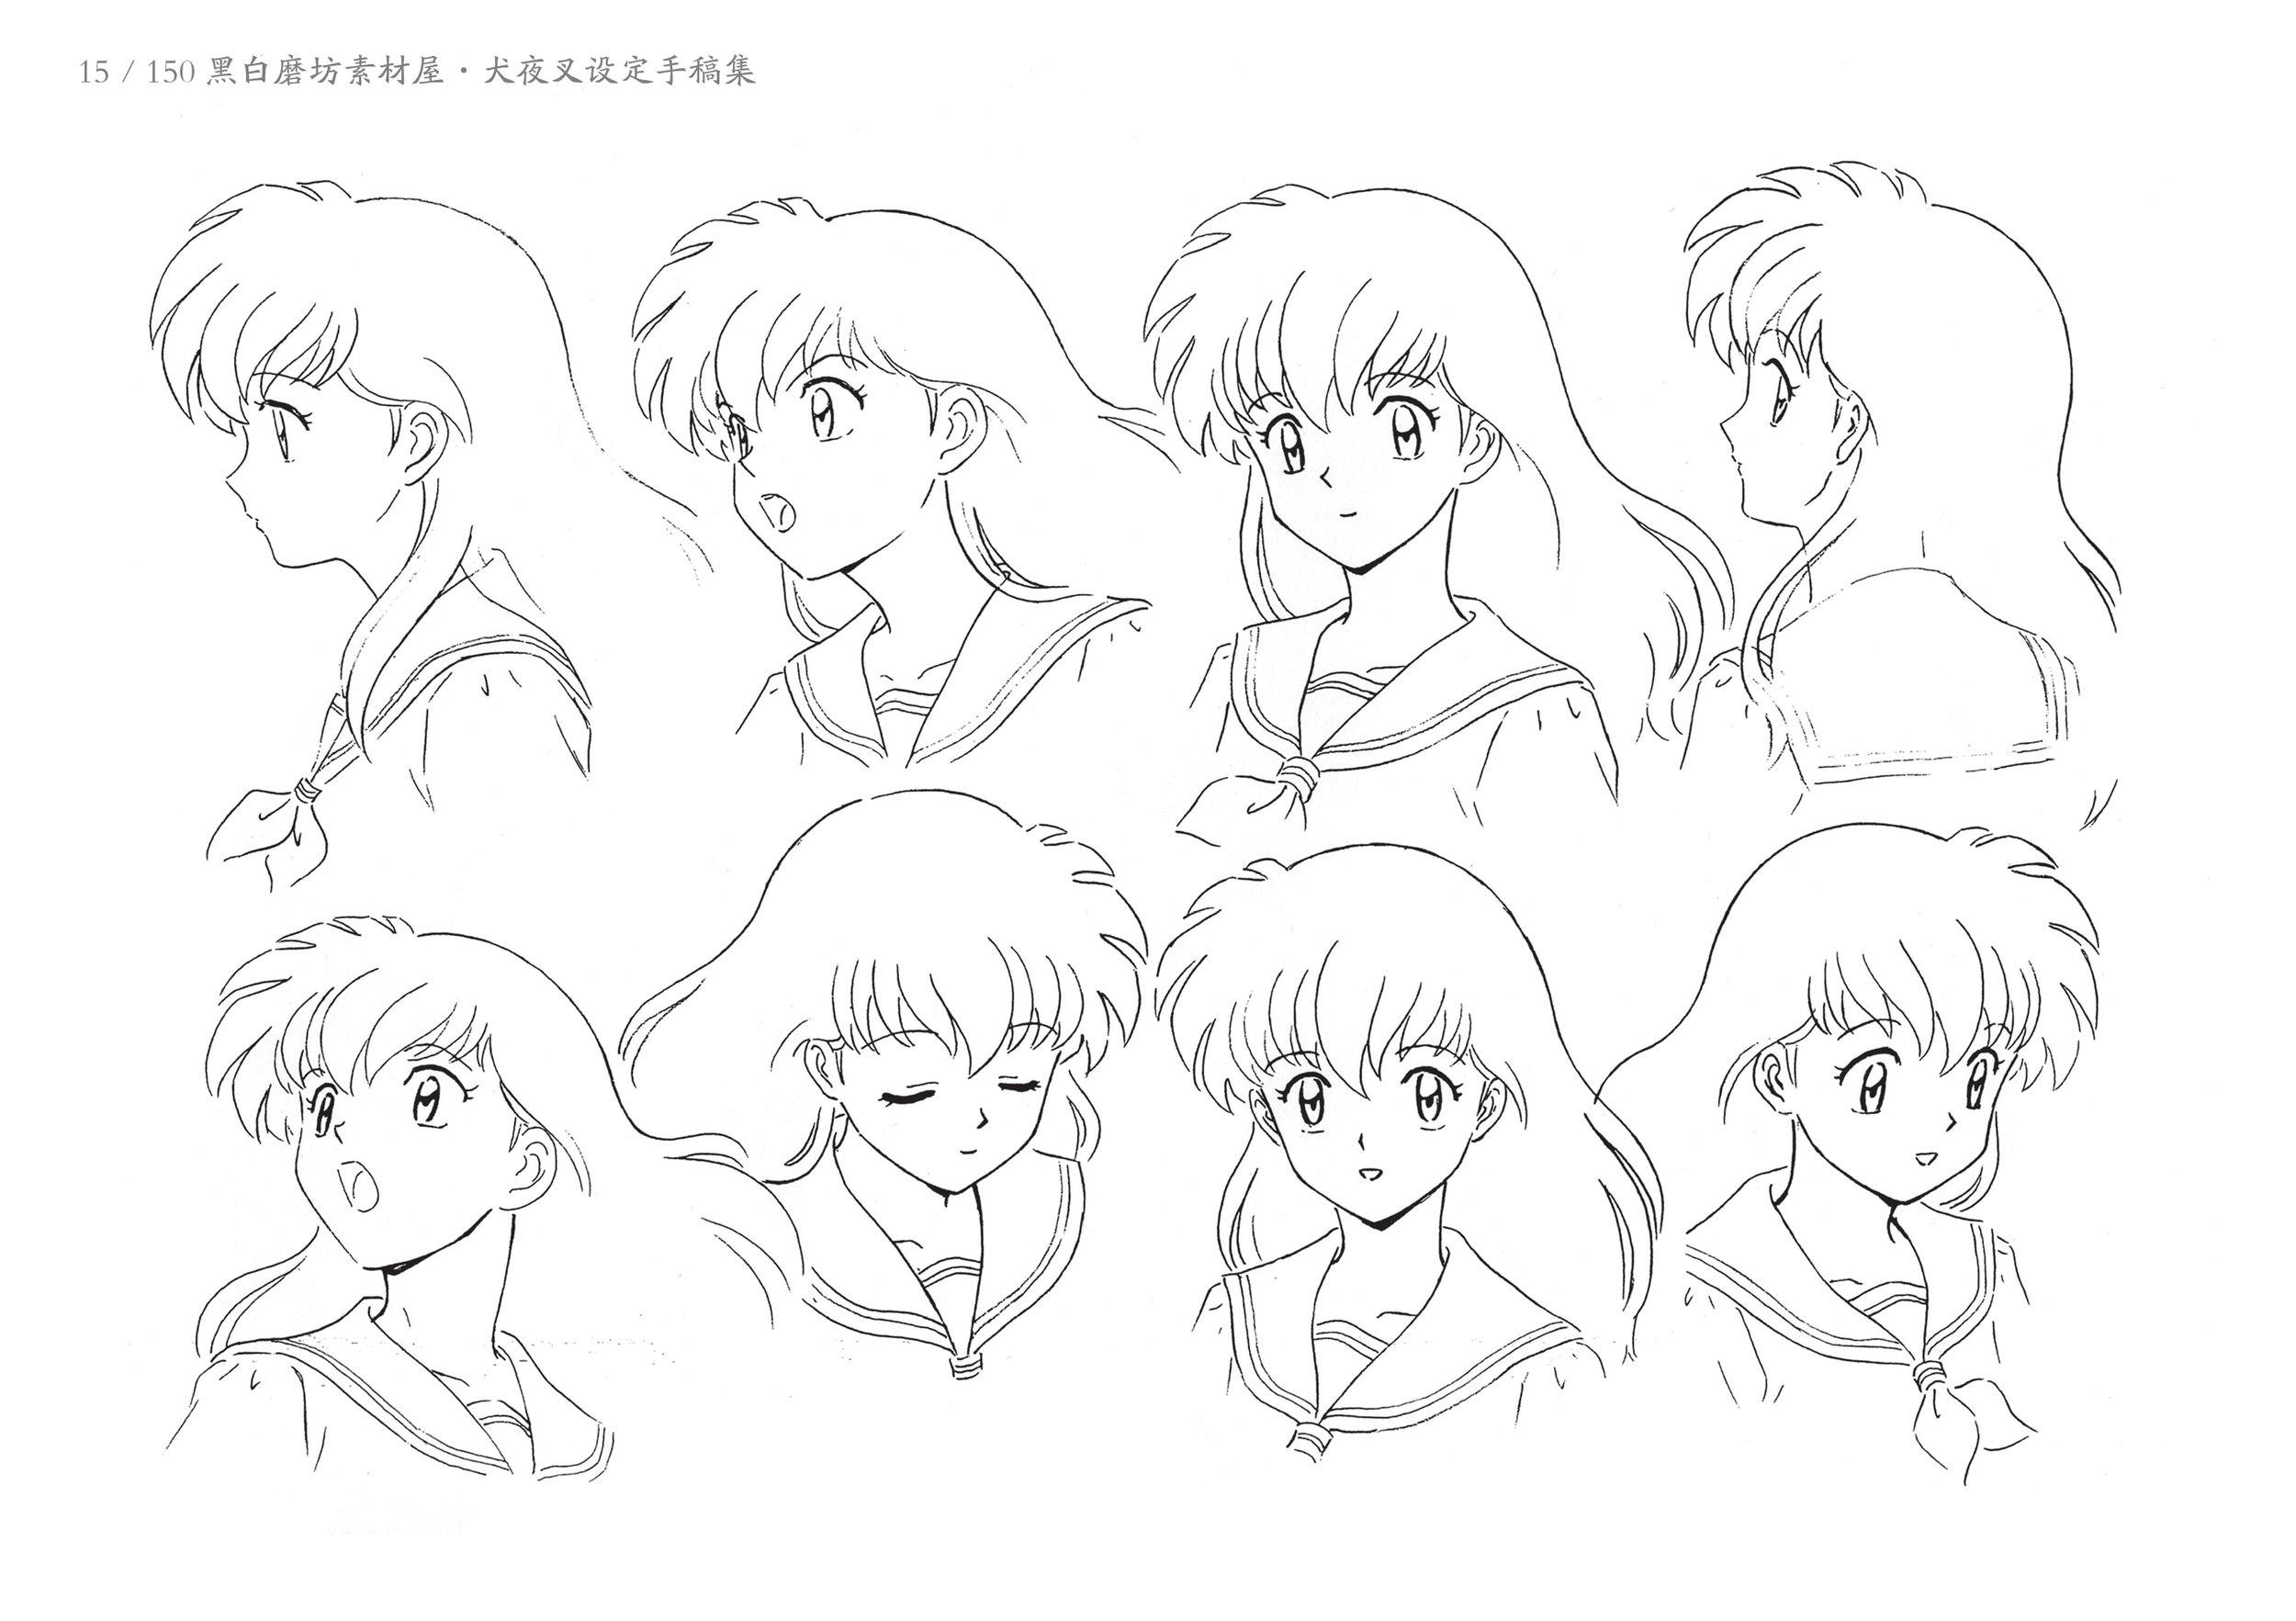 Art of the Inuyasha A - 12.jpg